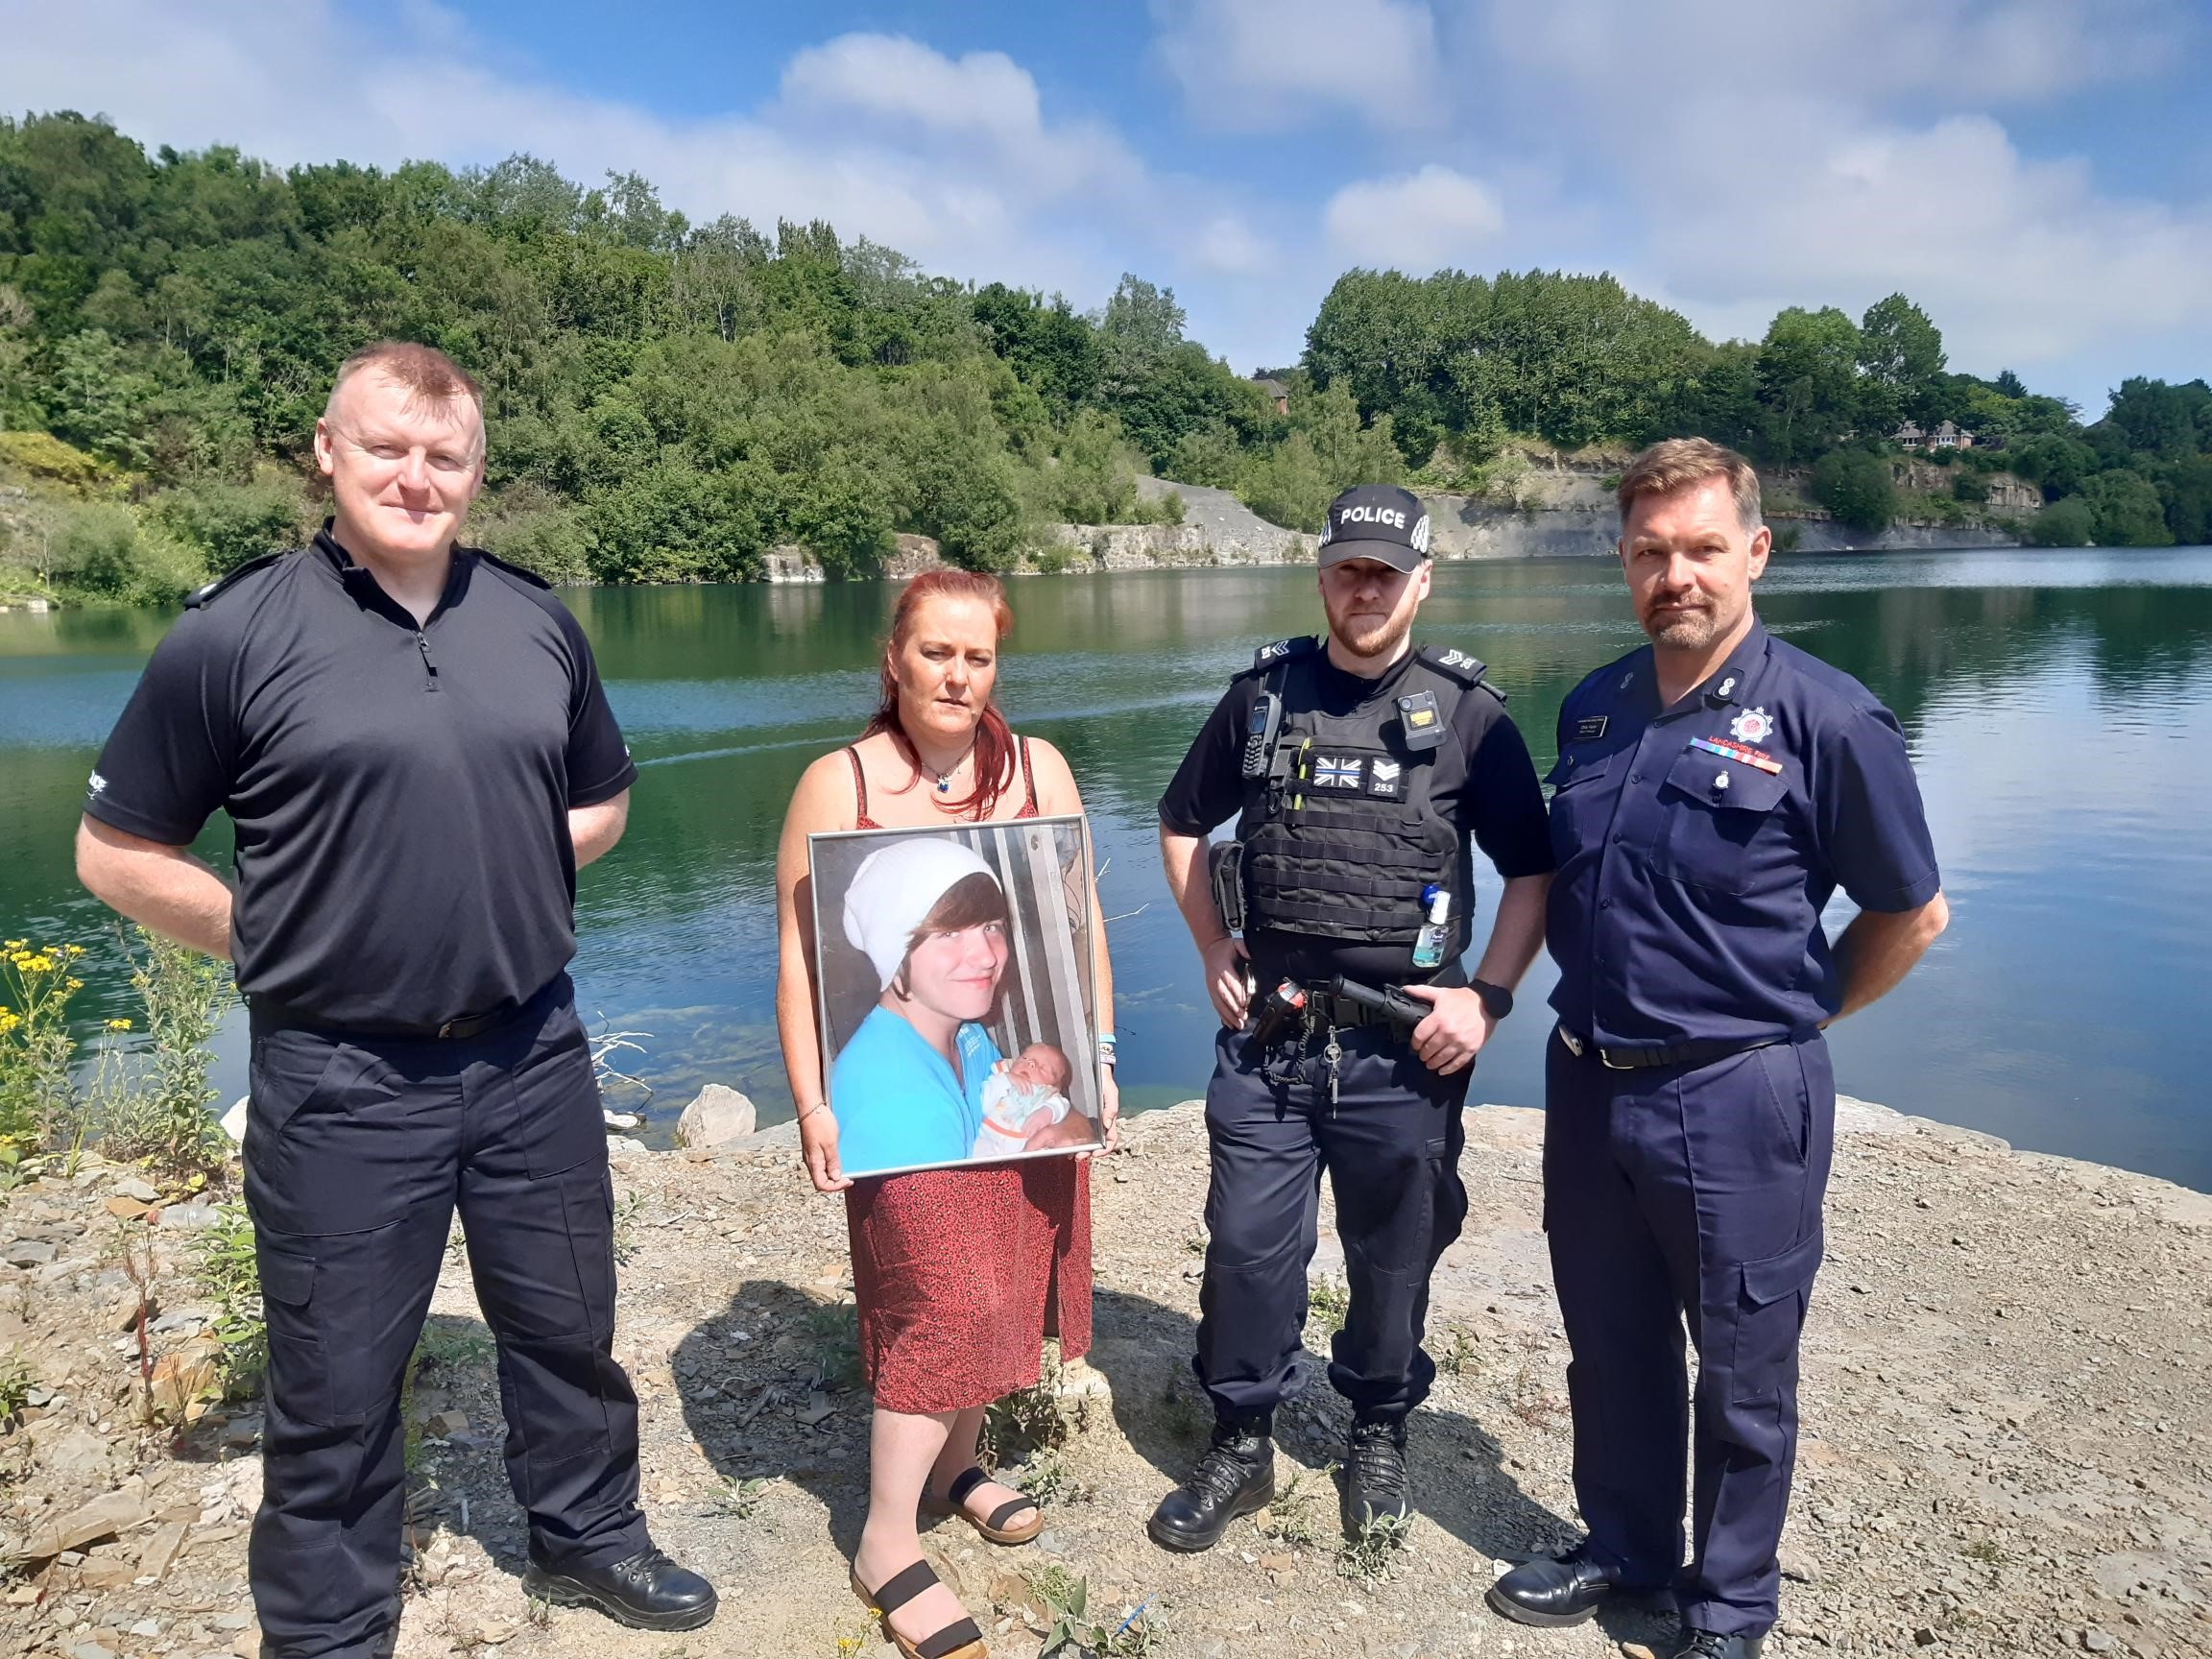 Police re-issue swim warning after removing youths from quarry site